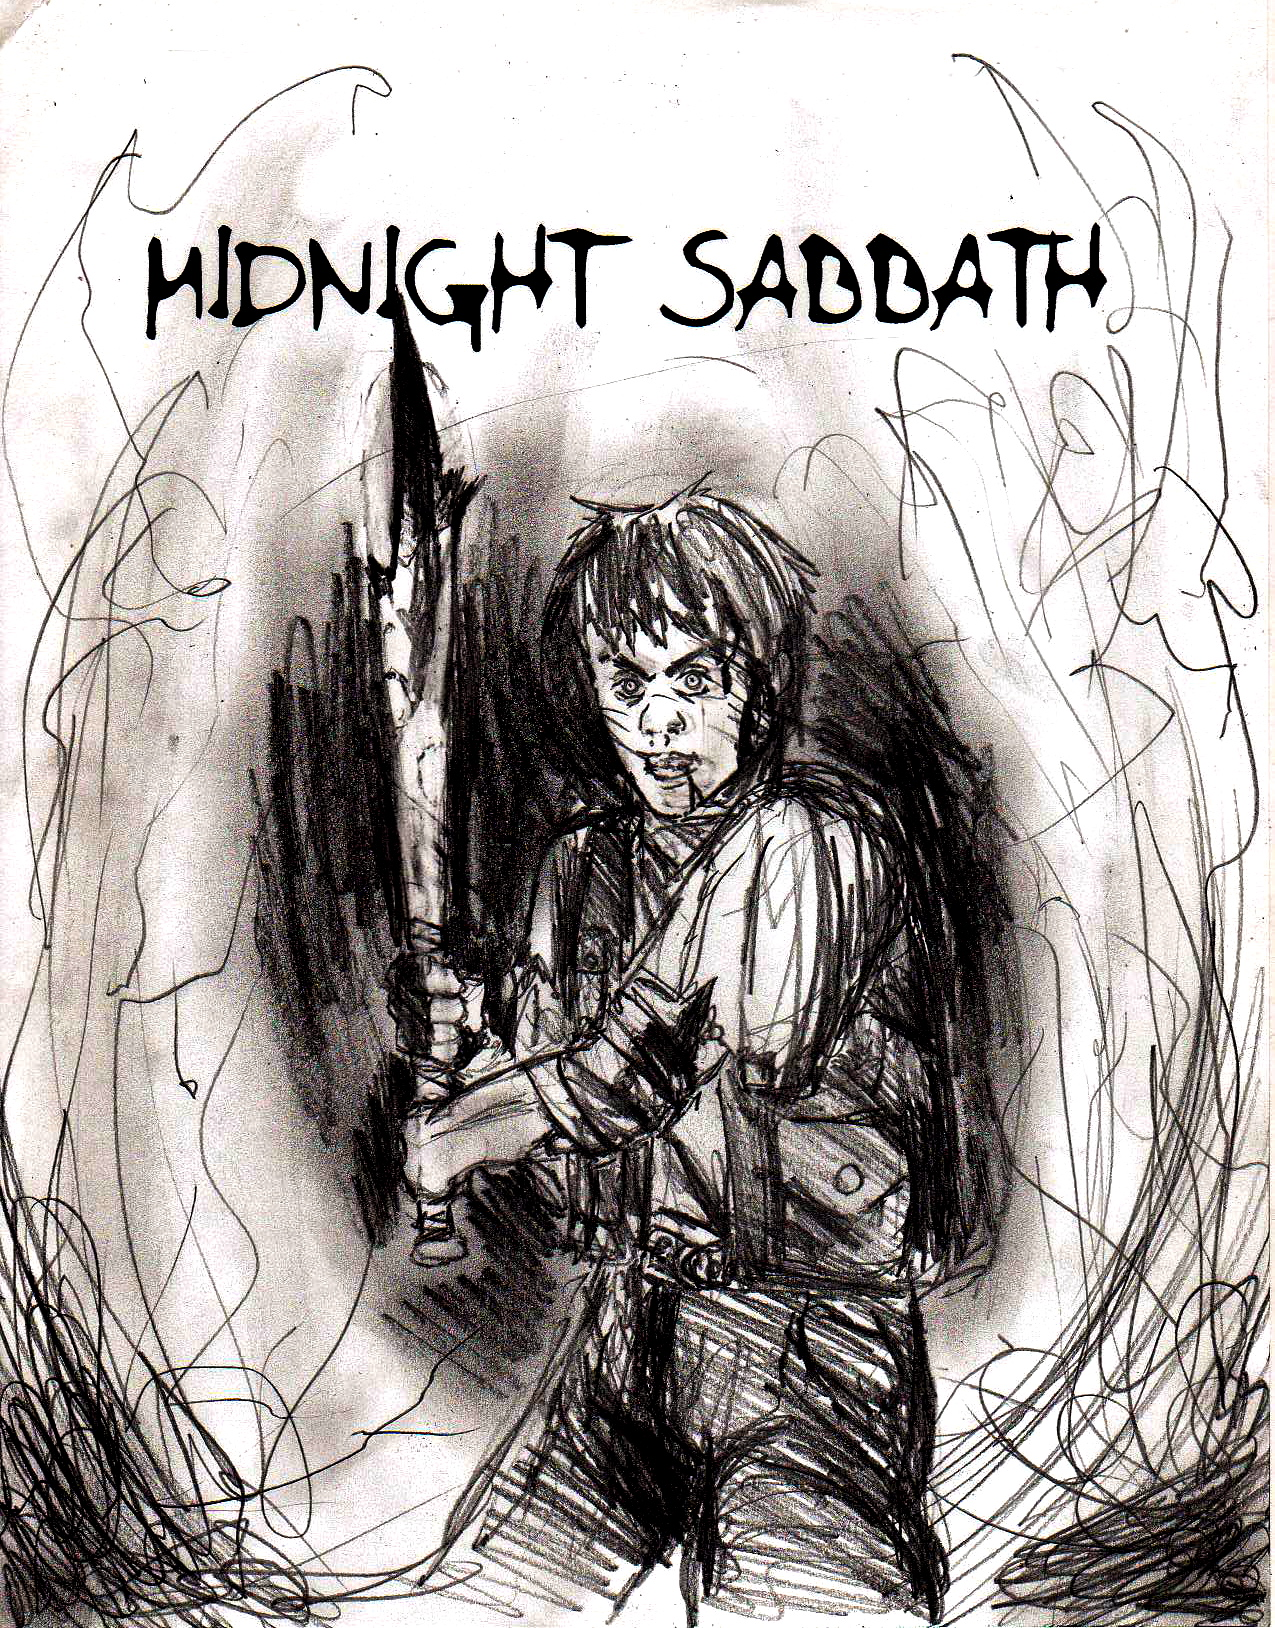 Midnight Sabbath